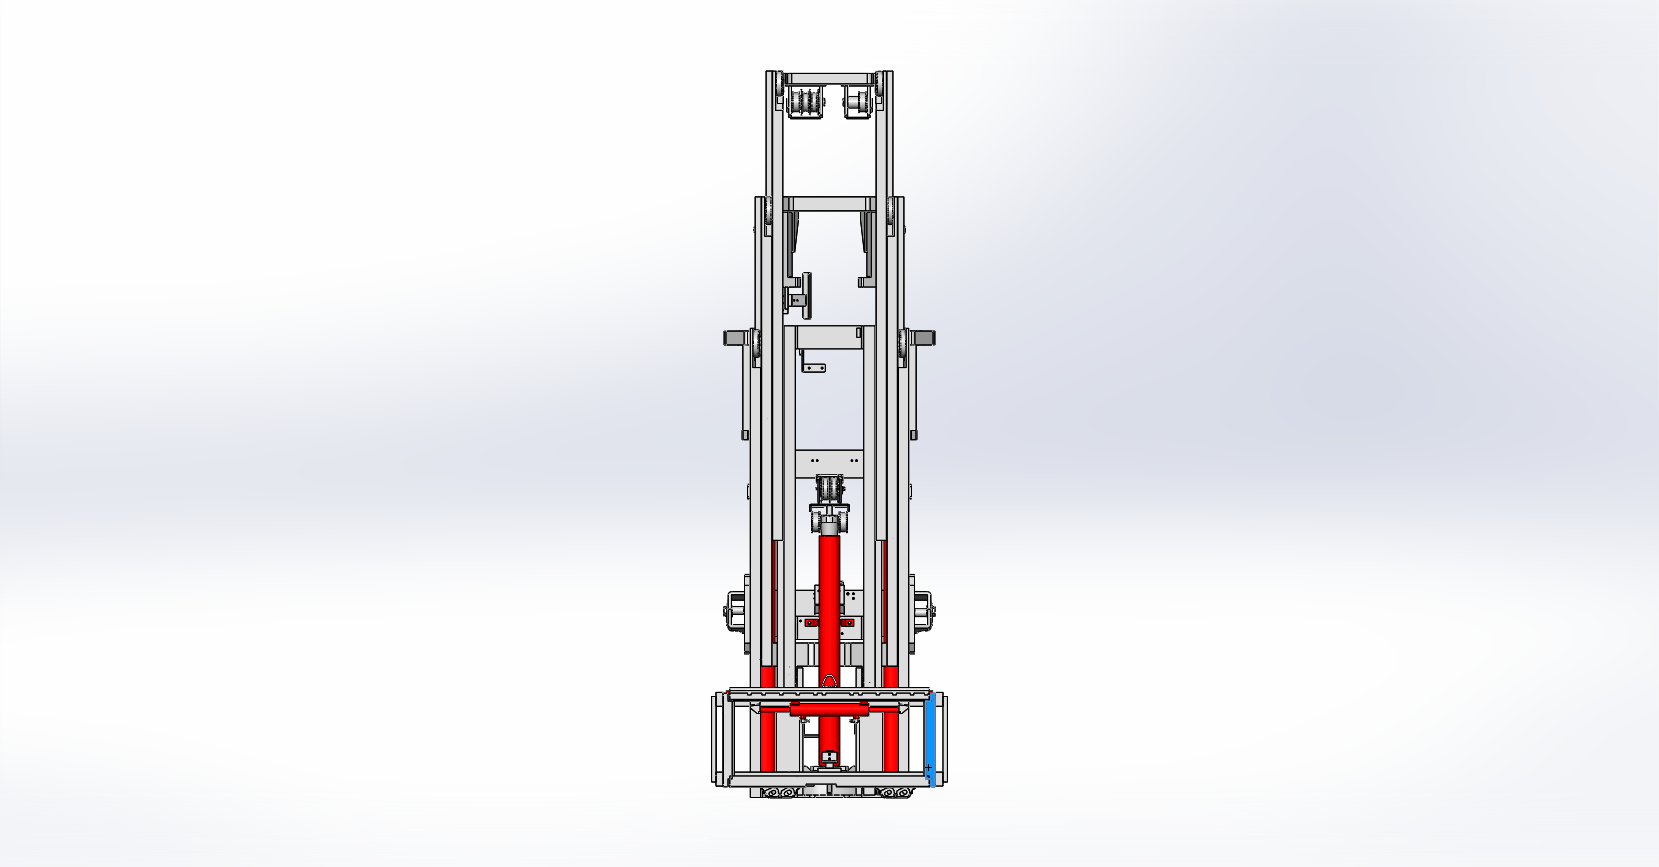 Axon Forklift: Four Stage Mast-5